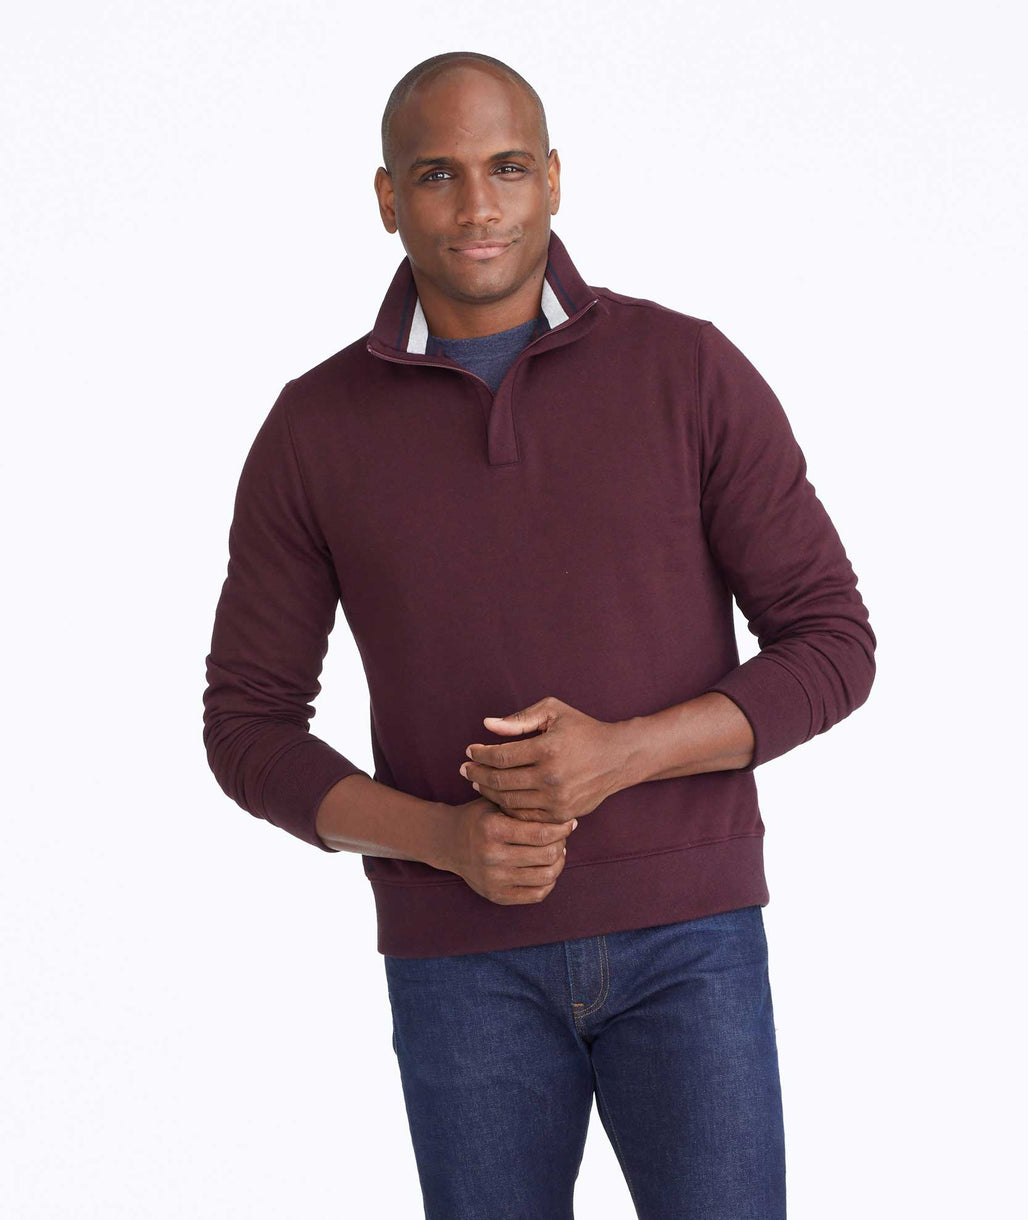 Model wearing a Dark Red Quarter-Zip Sweatshirt